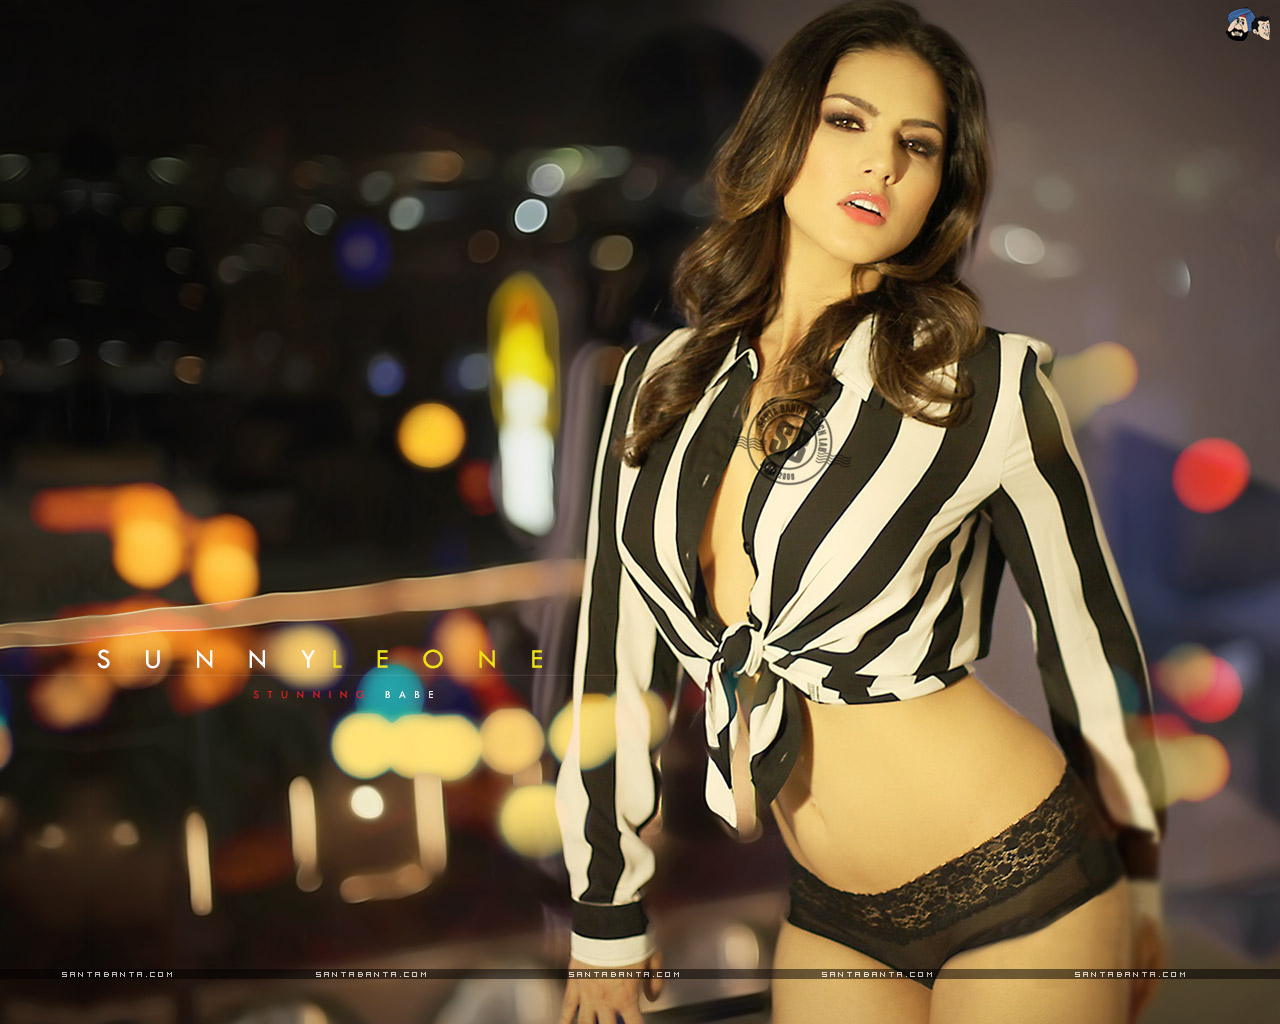 Cute Indian Baby Images For Wallpaper Sunny Leone Hd Wallpapers Most Beautiful Places In The